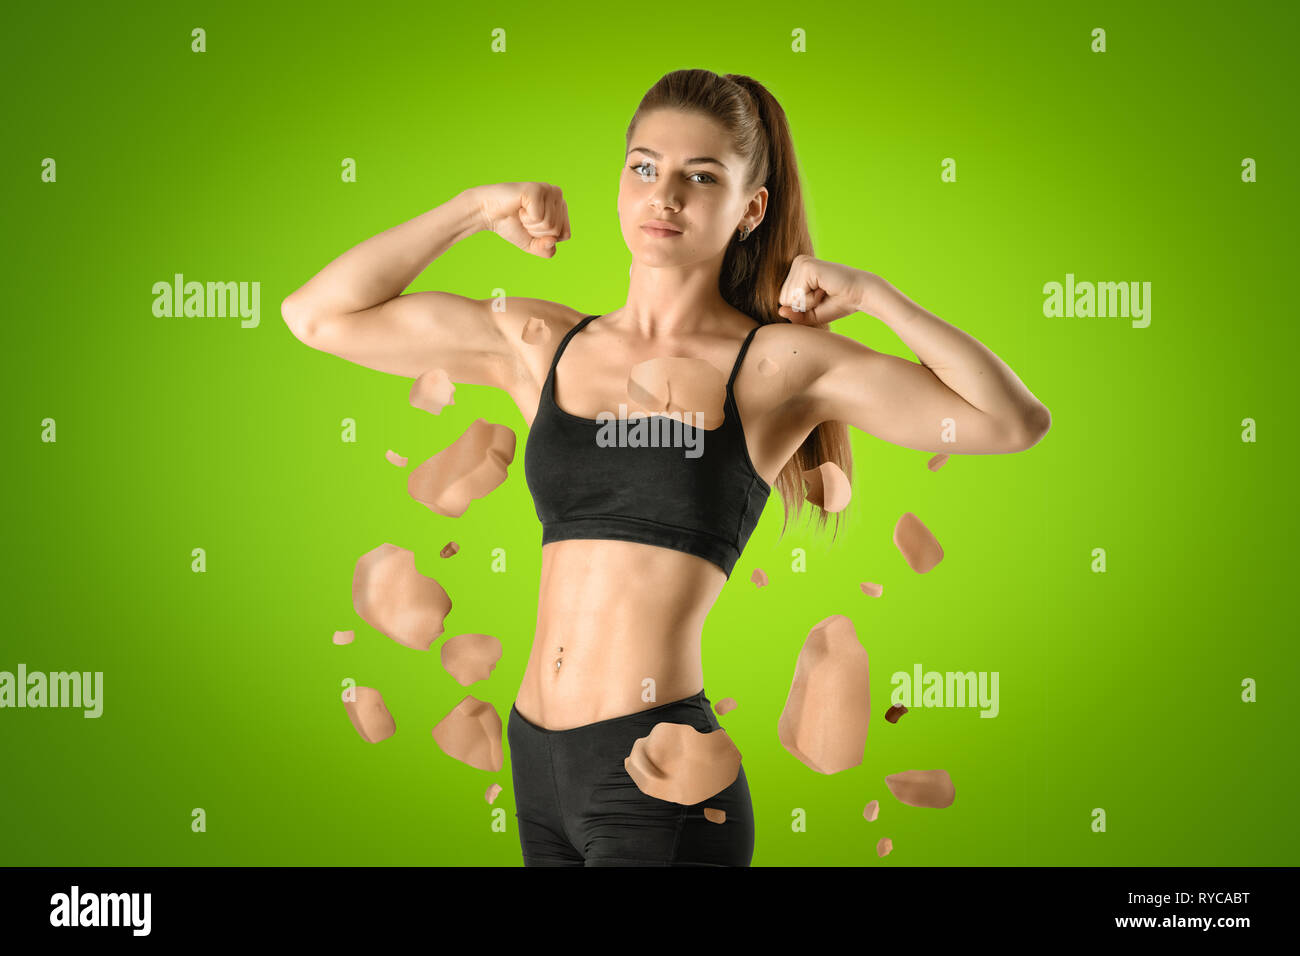 Young fit woman standing half-turn and performing double bicep pose with pieces of flesh in air around her body on green background. - Stock Image